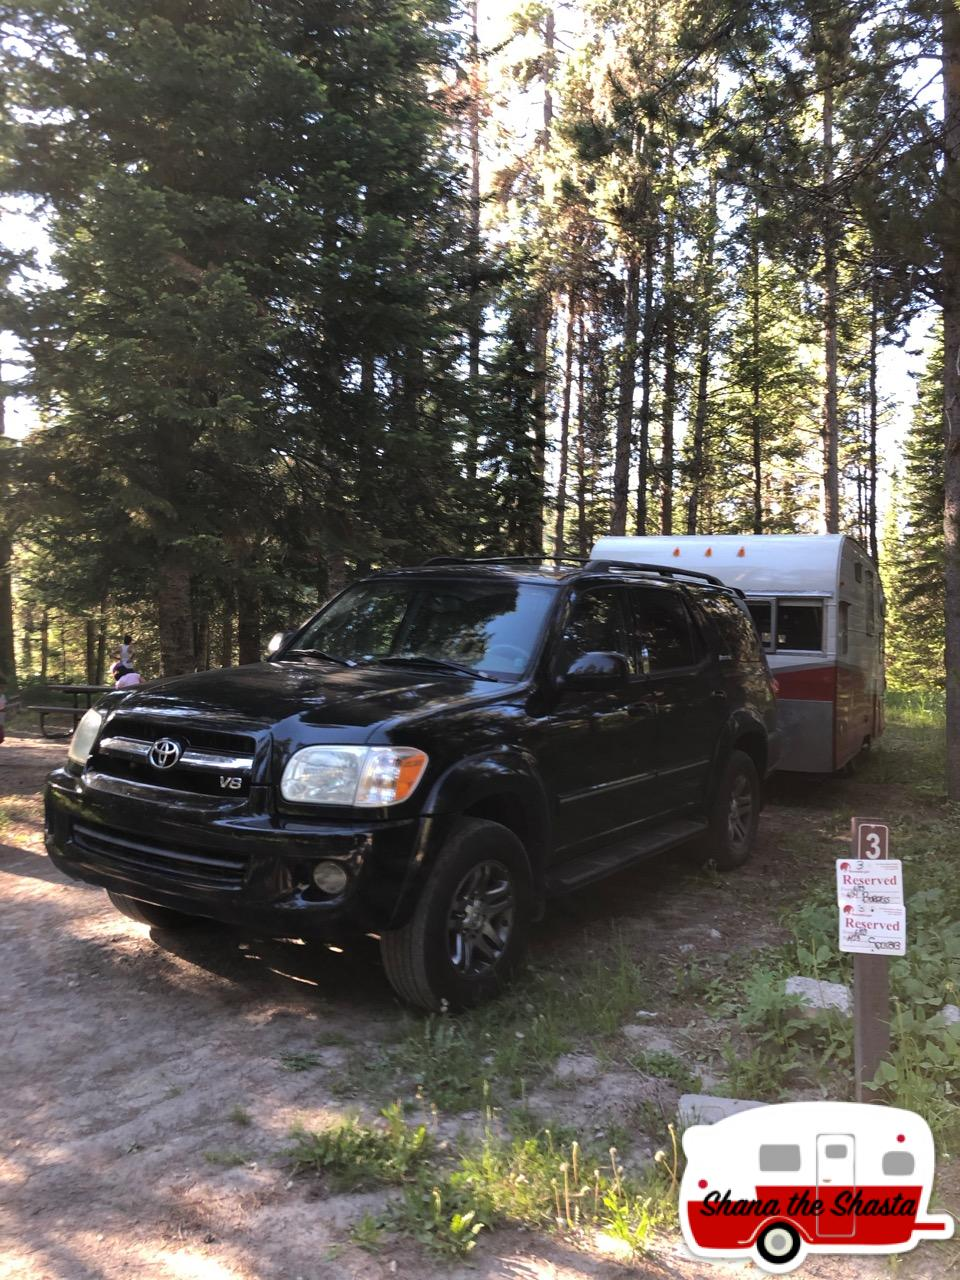 Mike-Harris-Creek-Campground